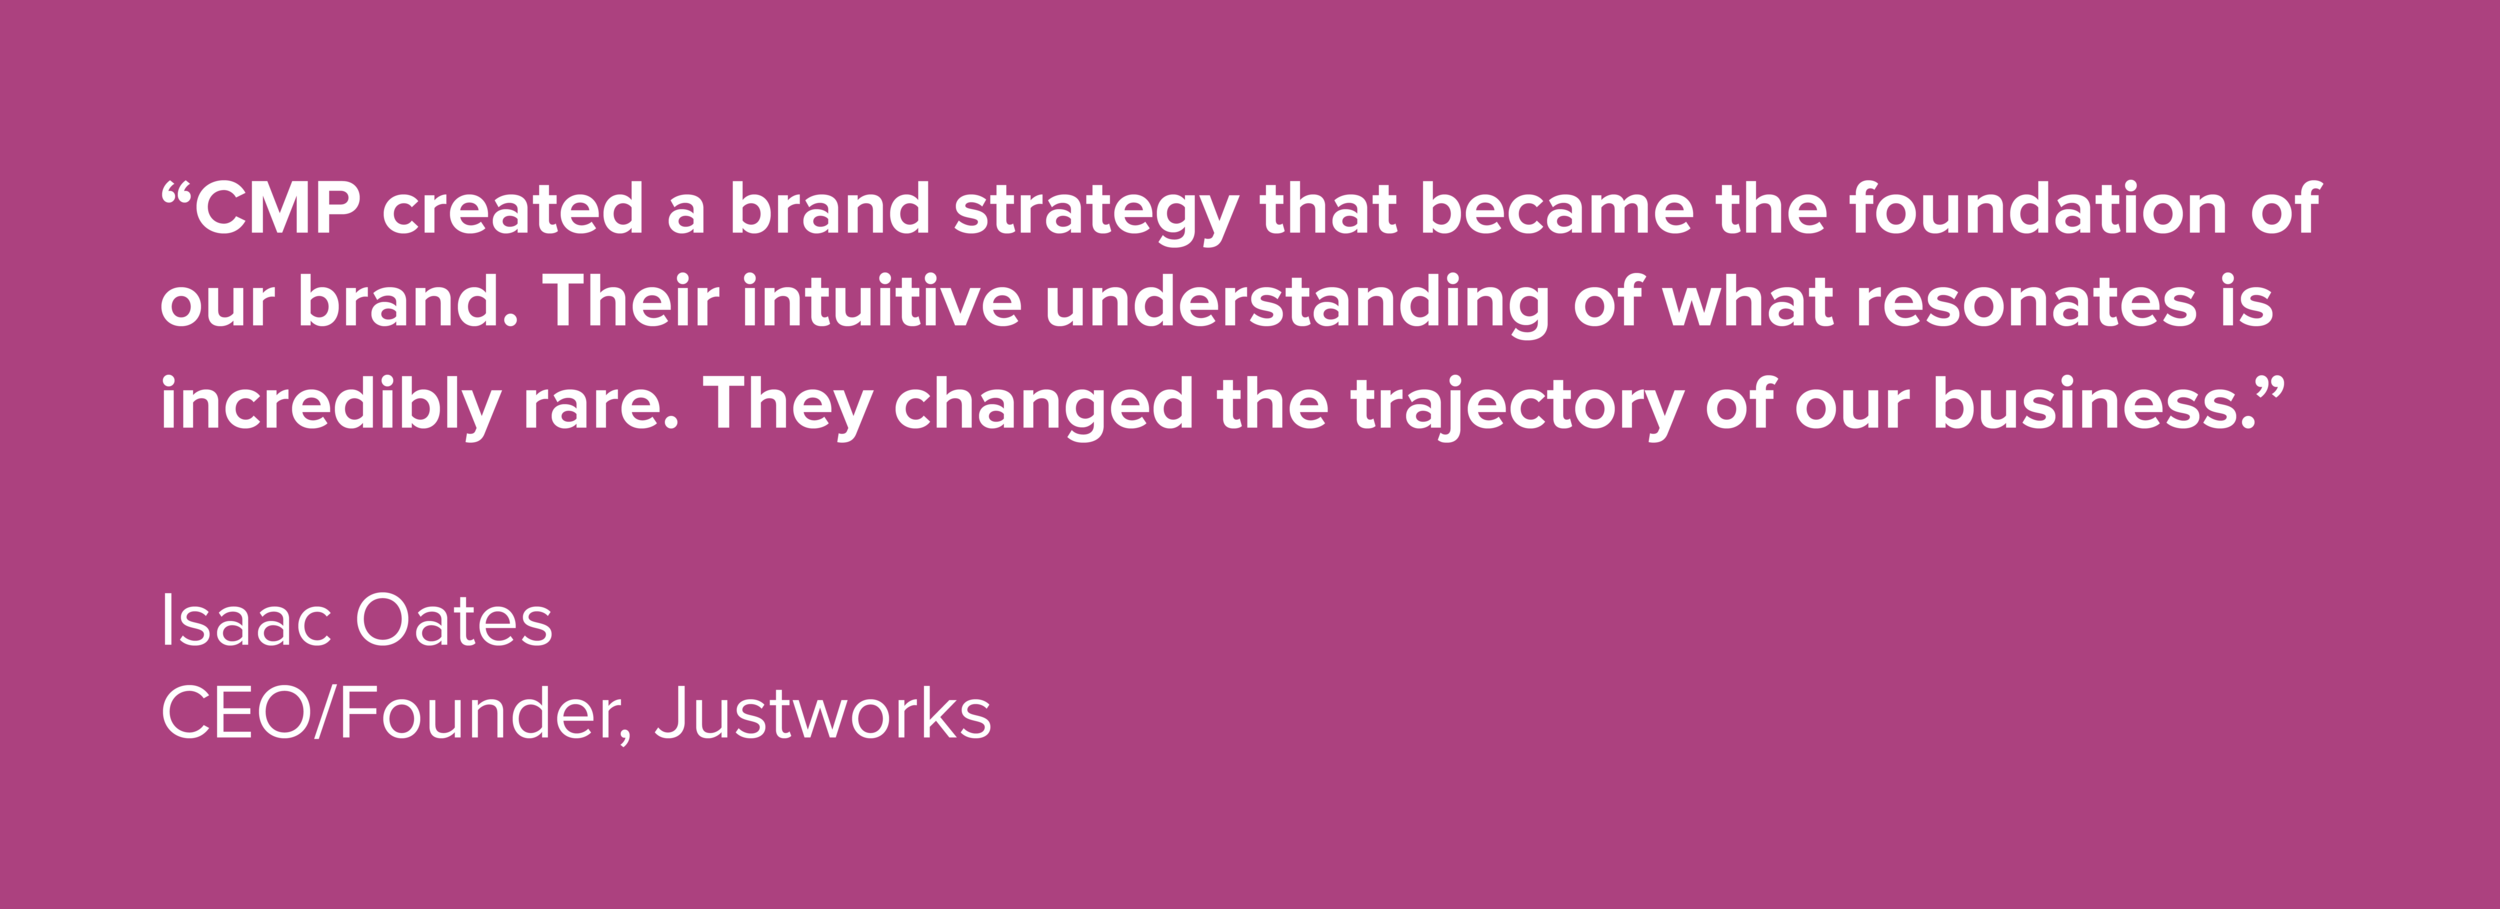 justworks quote.png